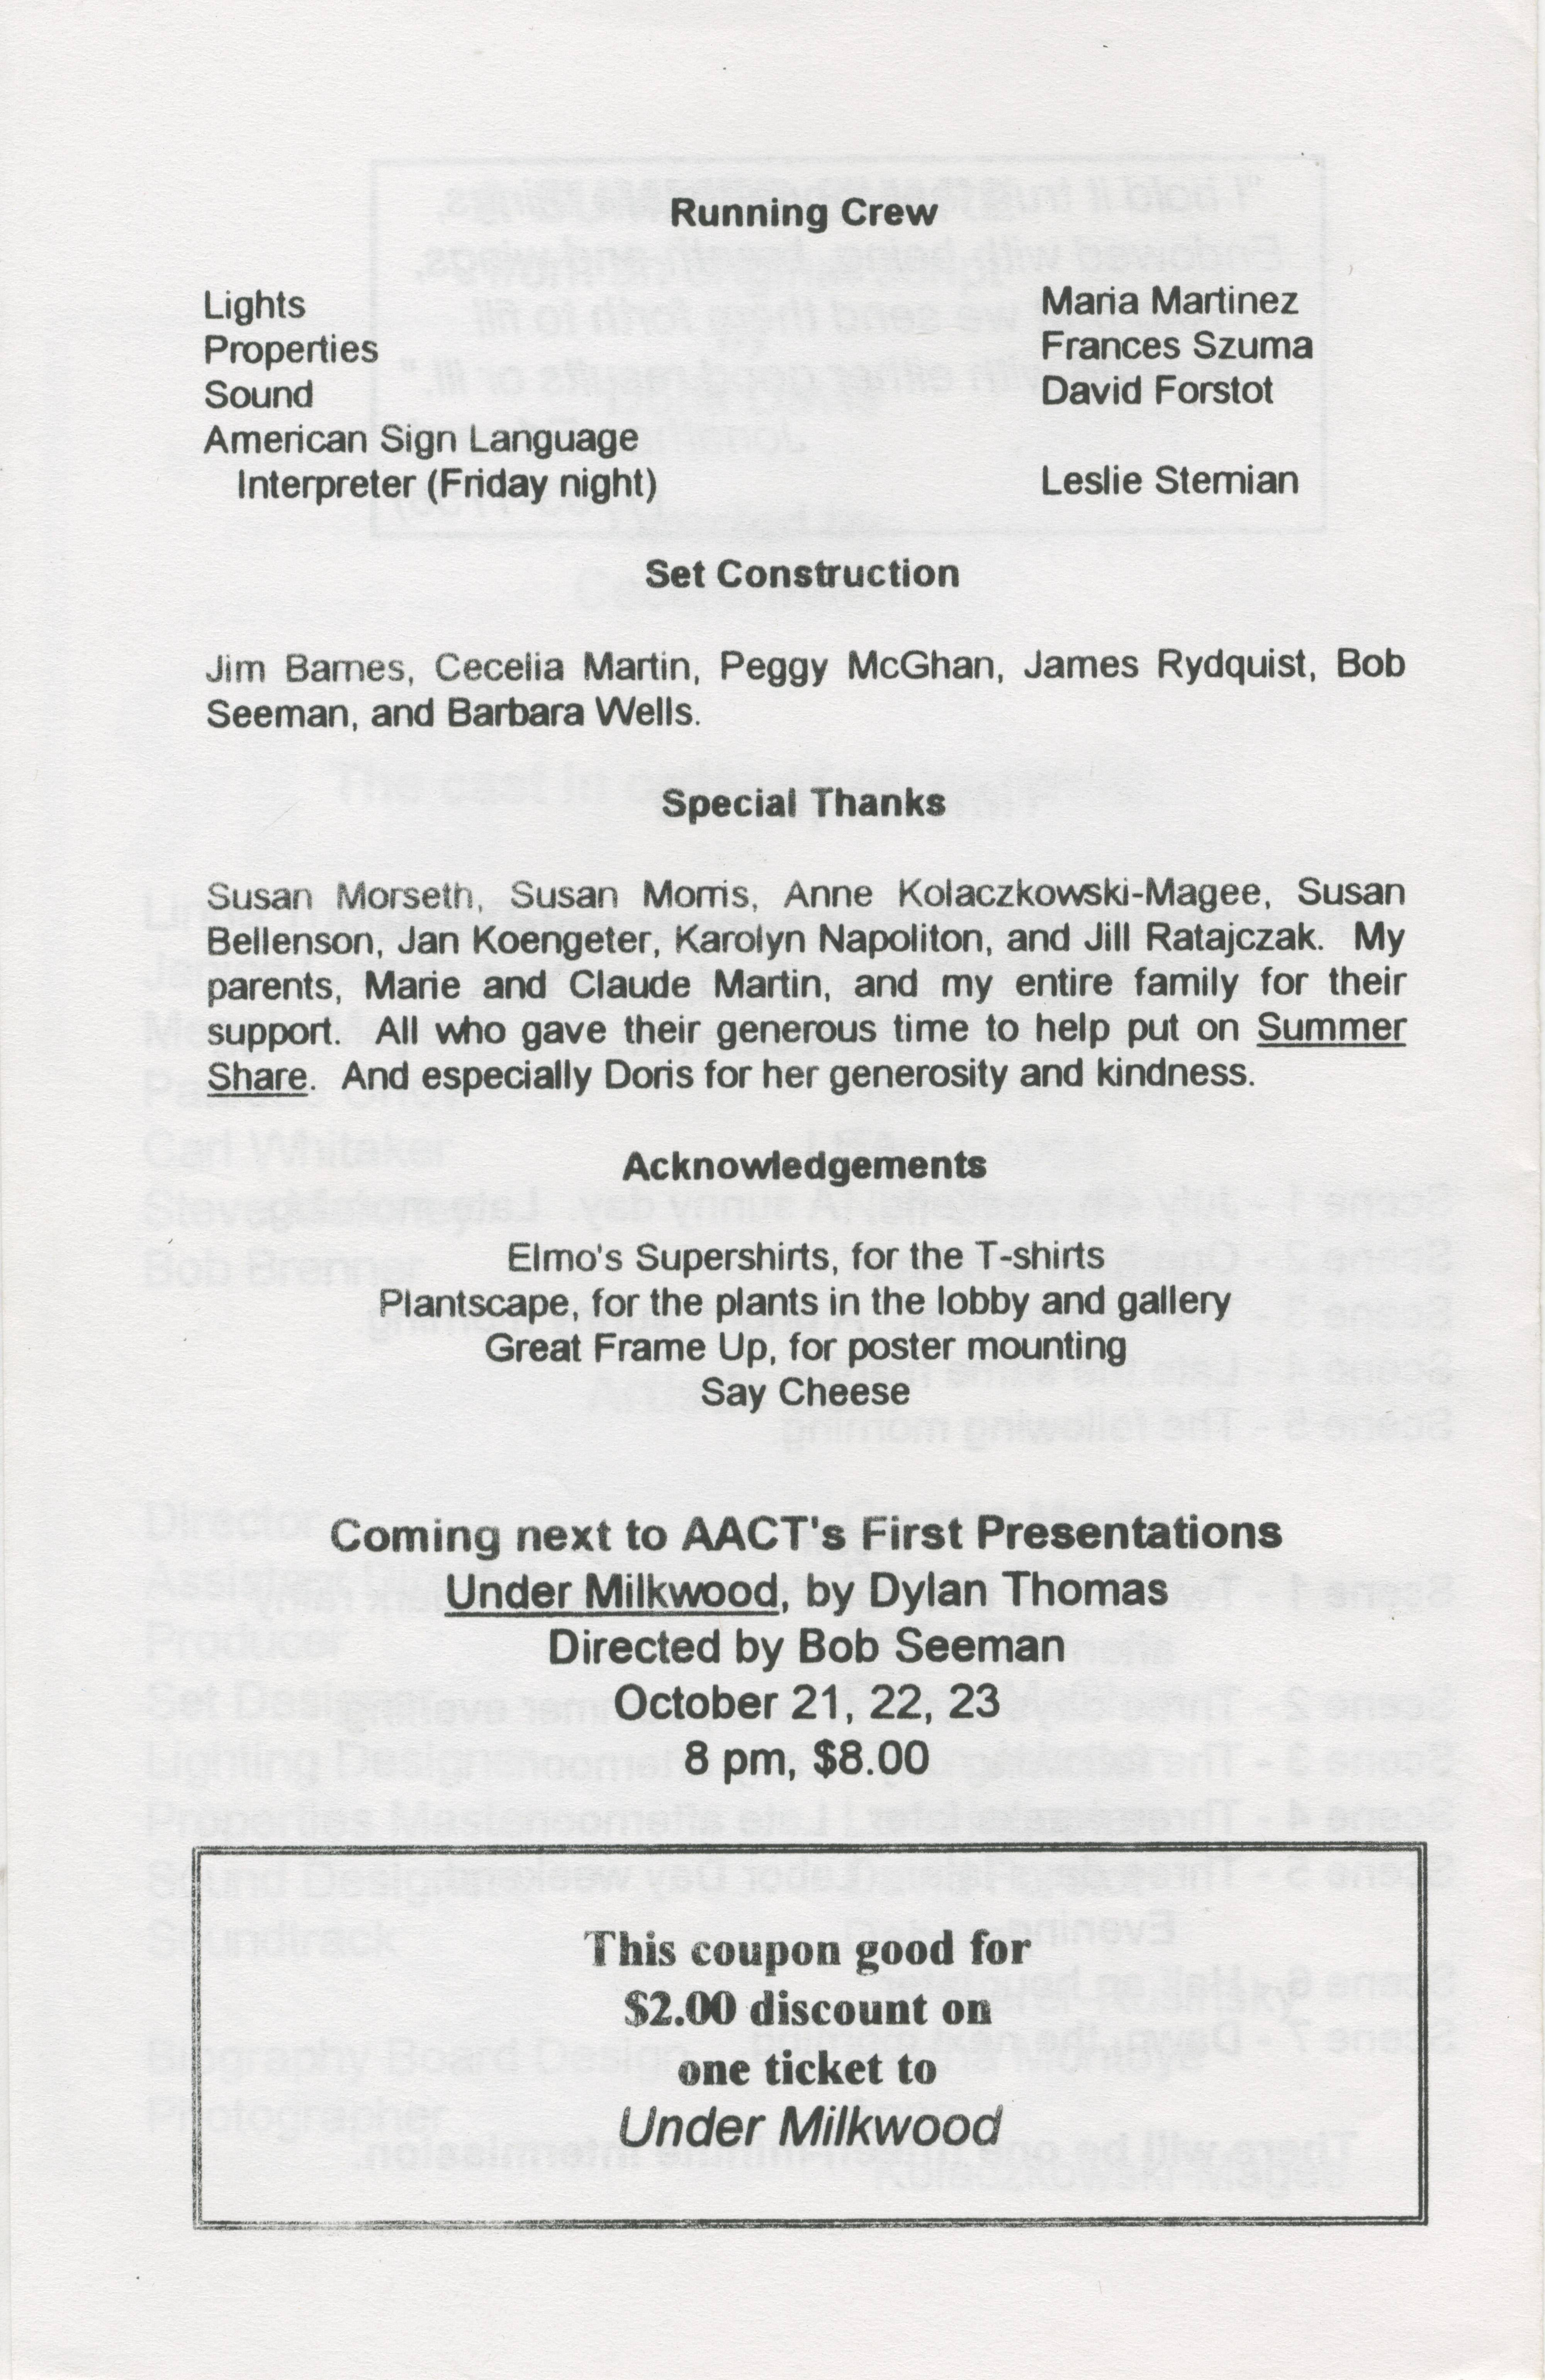 Ann Arbor Civic Theatre Program: A Summer Share, August 12, 1993 image